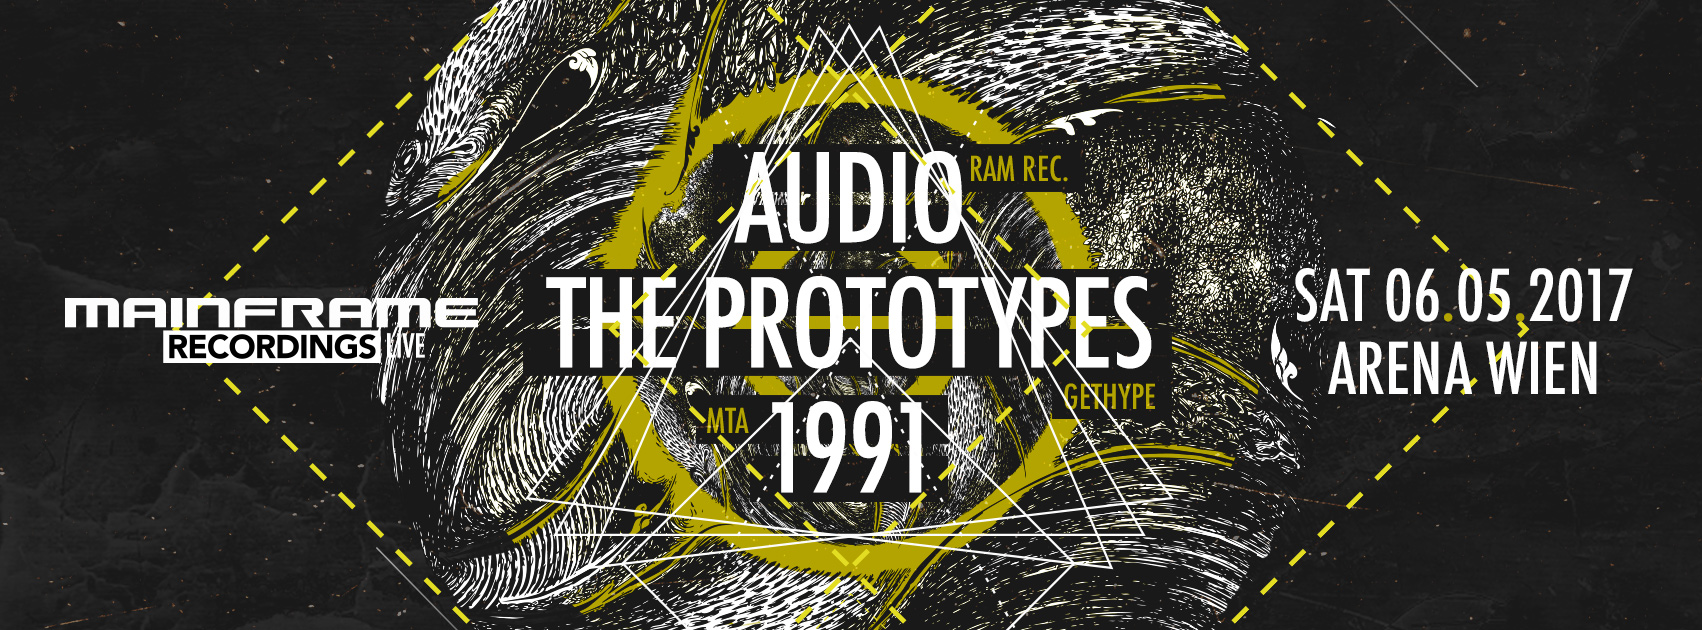 Mainframe Recordings Live! pres. AUDIO / THE PROTOTYPES / 1991 – Tickets available!